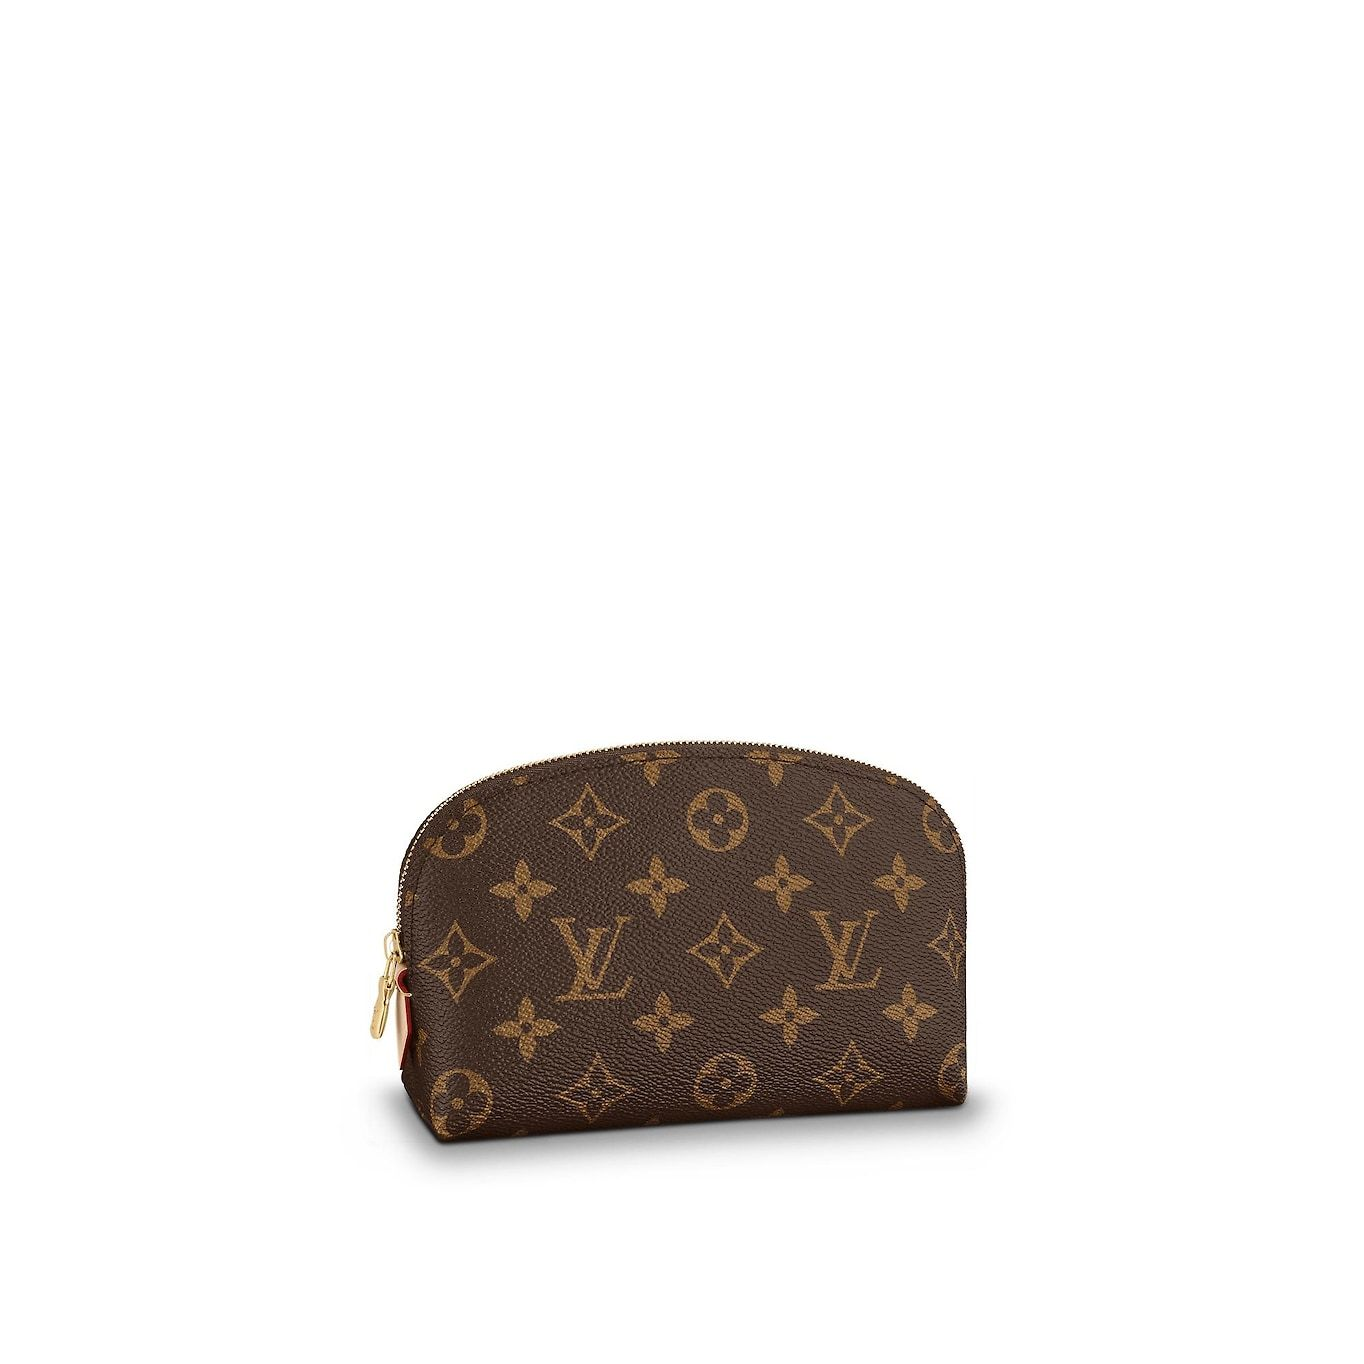 aa90eea03b57 View 1 - Cosmetic Pouch Monogram Canvas in Women s Travel All Collections  collections by Louis Vuitton